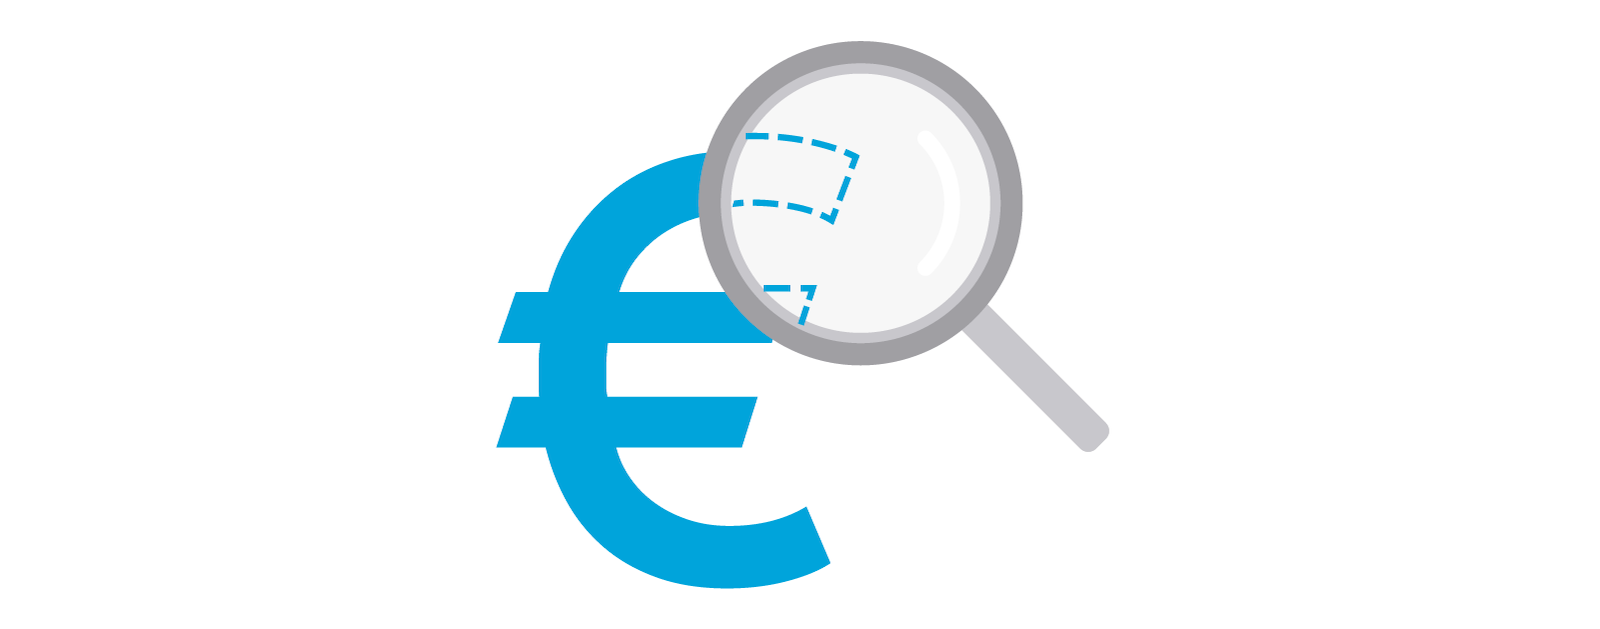 Illustration showing a Euro sign with a magnifying glass over it